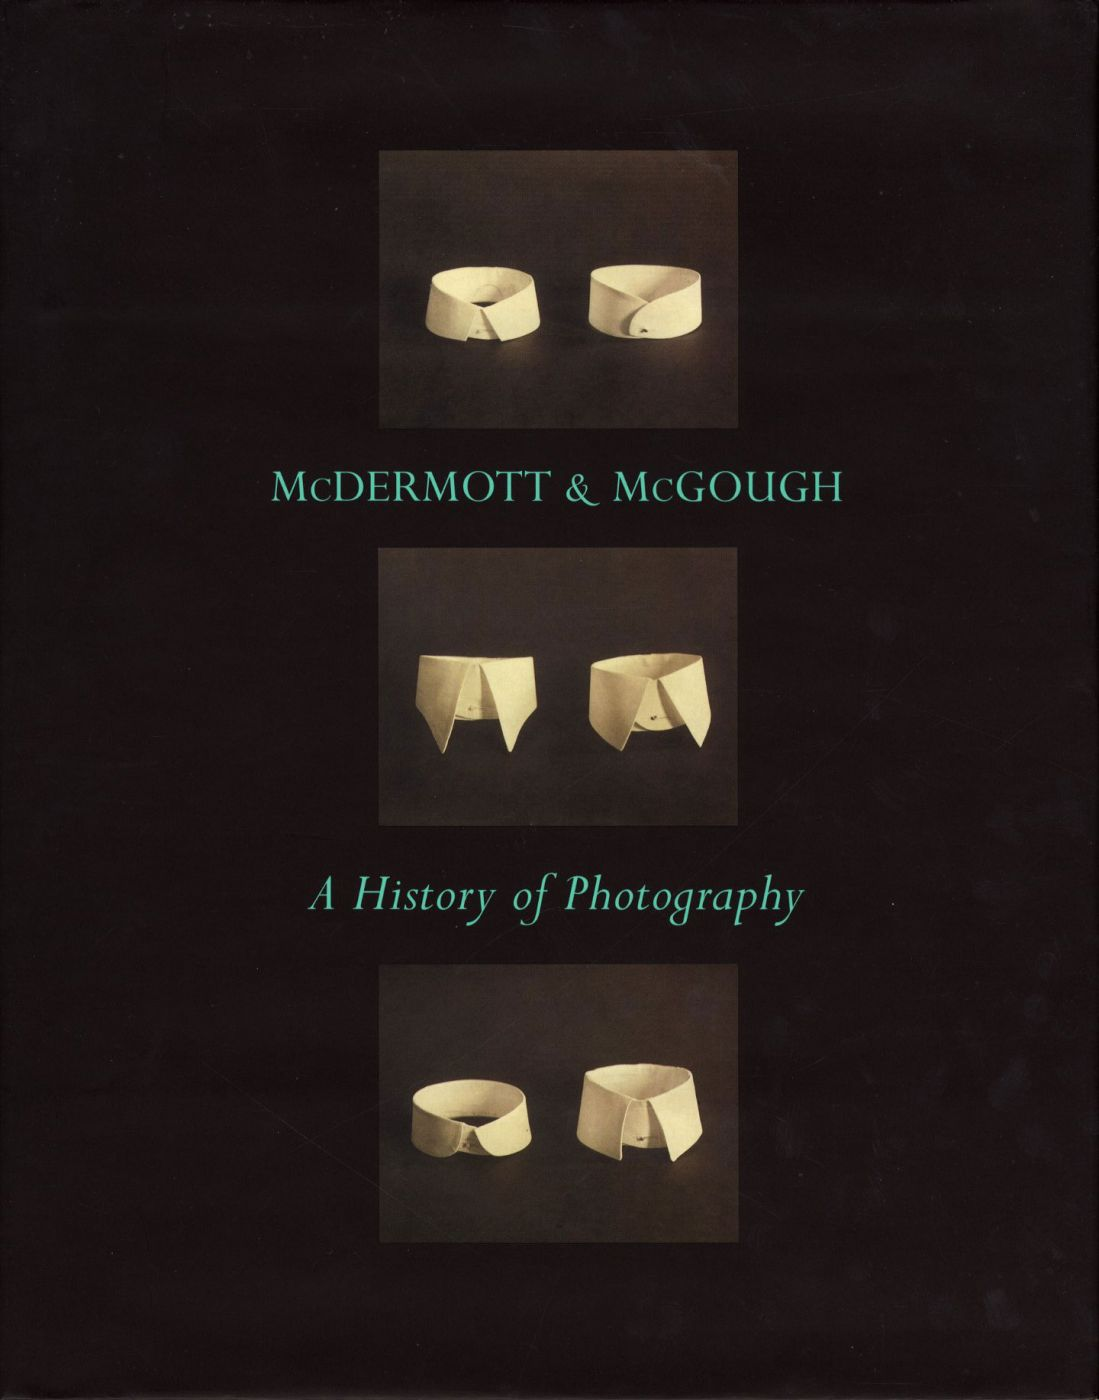 McDermott & McGough: History of Photography